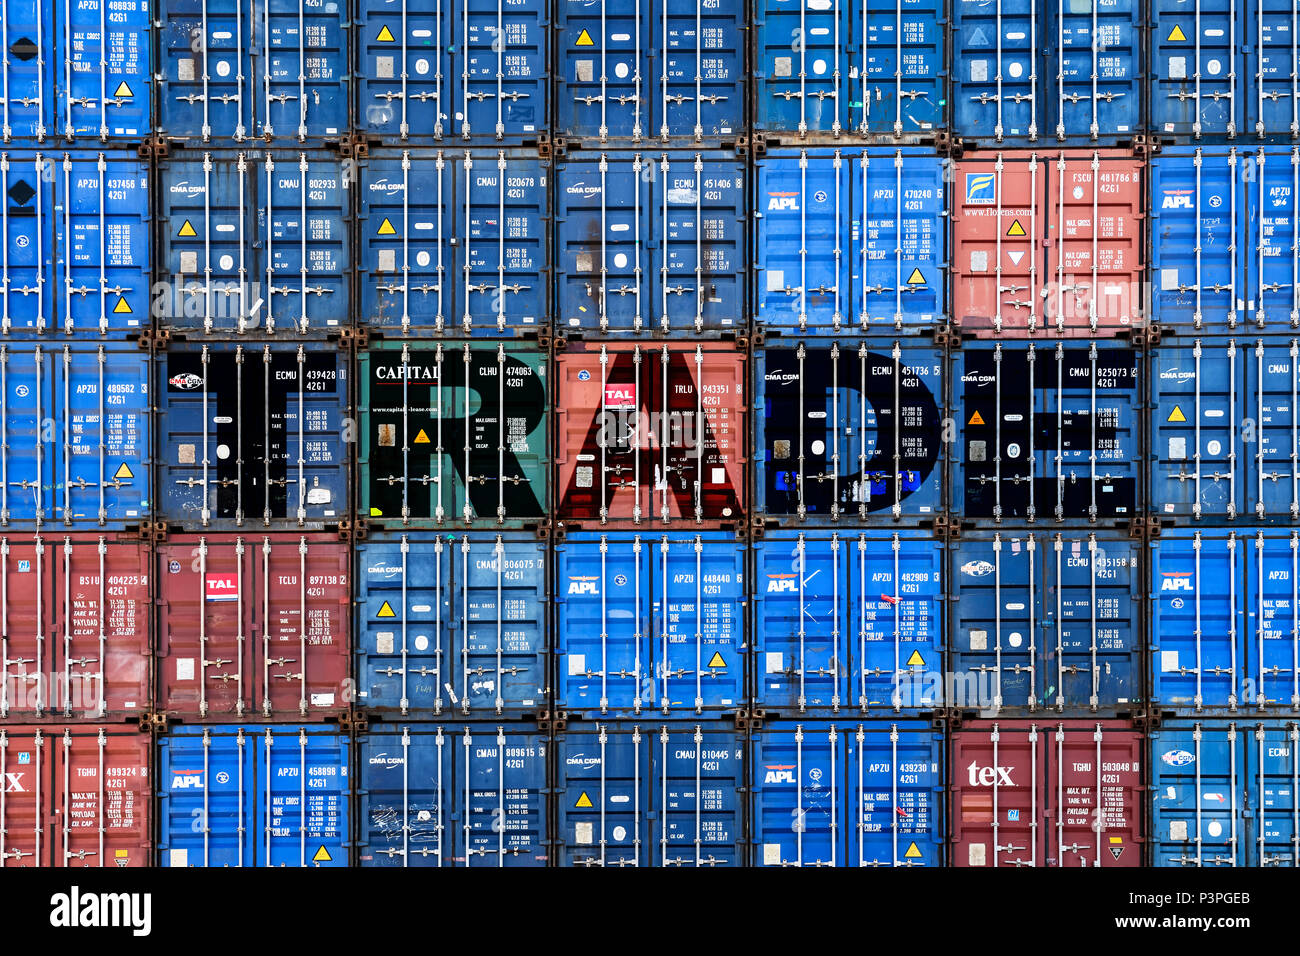 Stacked containers labeled trade, trade Photo icon, Gestapelte Container mit der Aufschrift Trade, Symbolfoto Handel - Stock Image